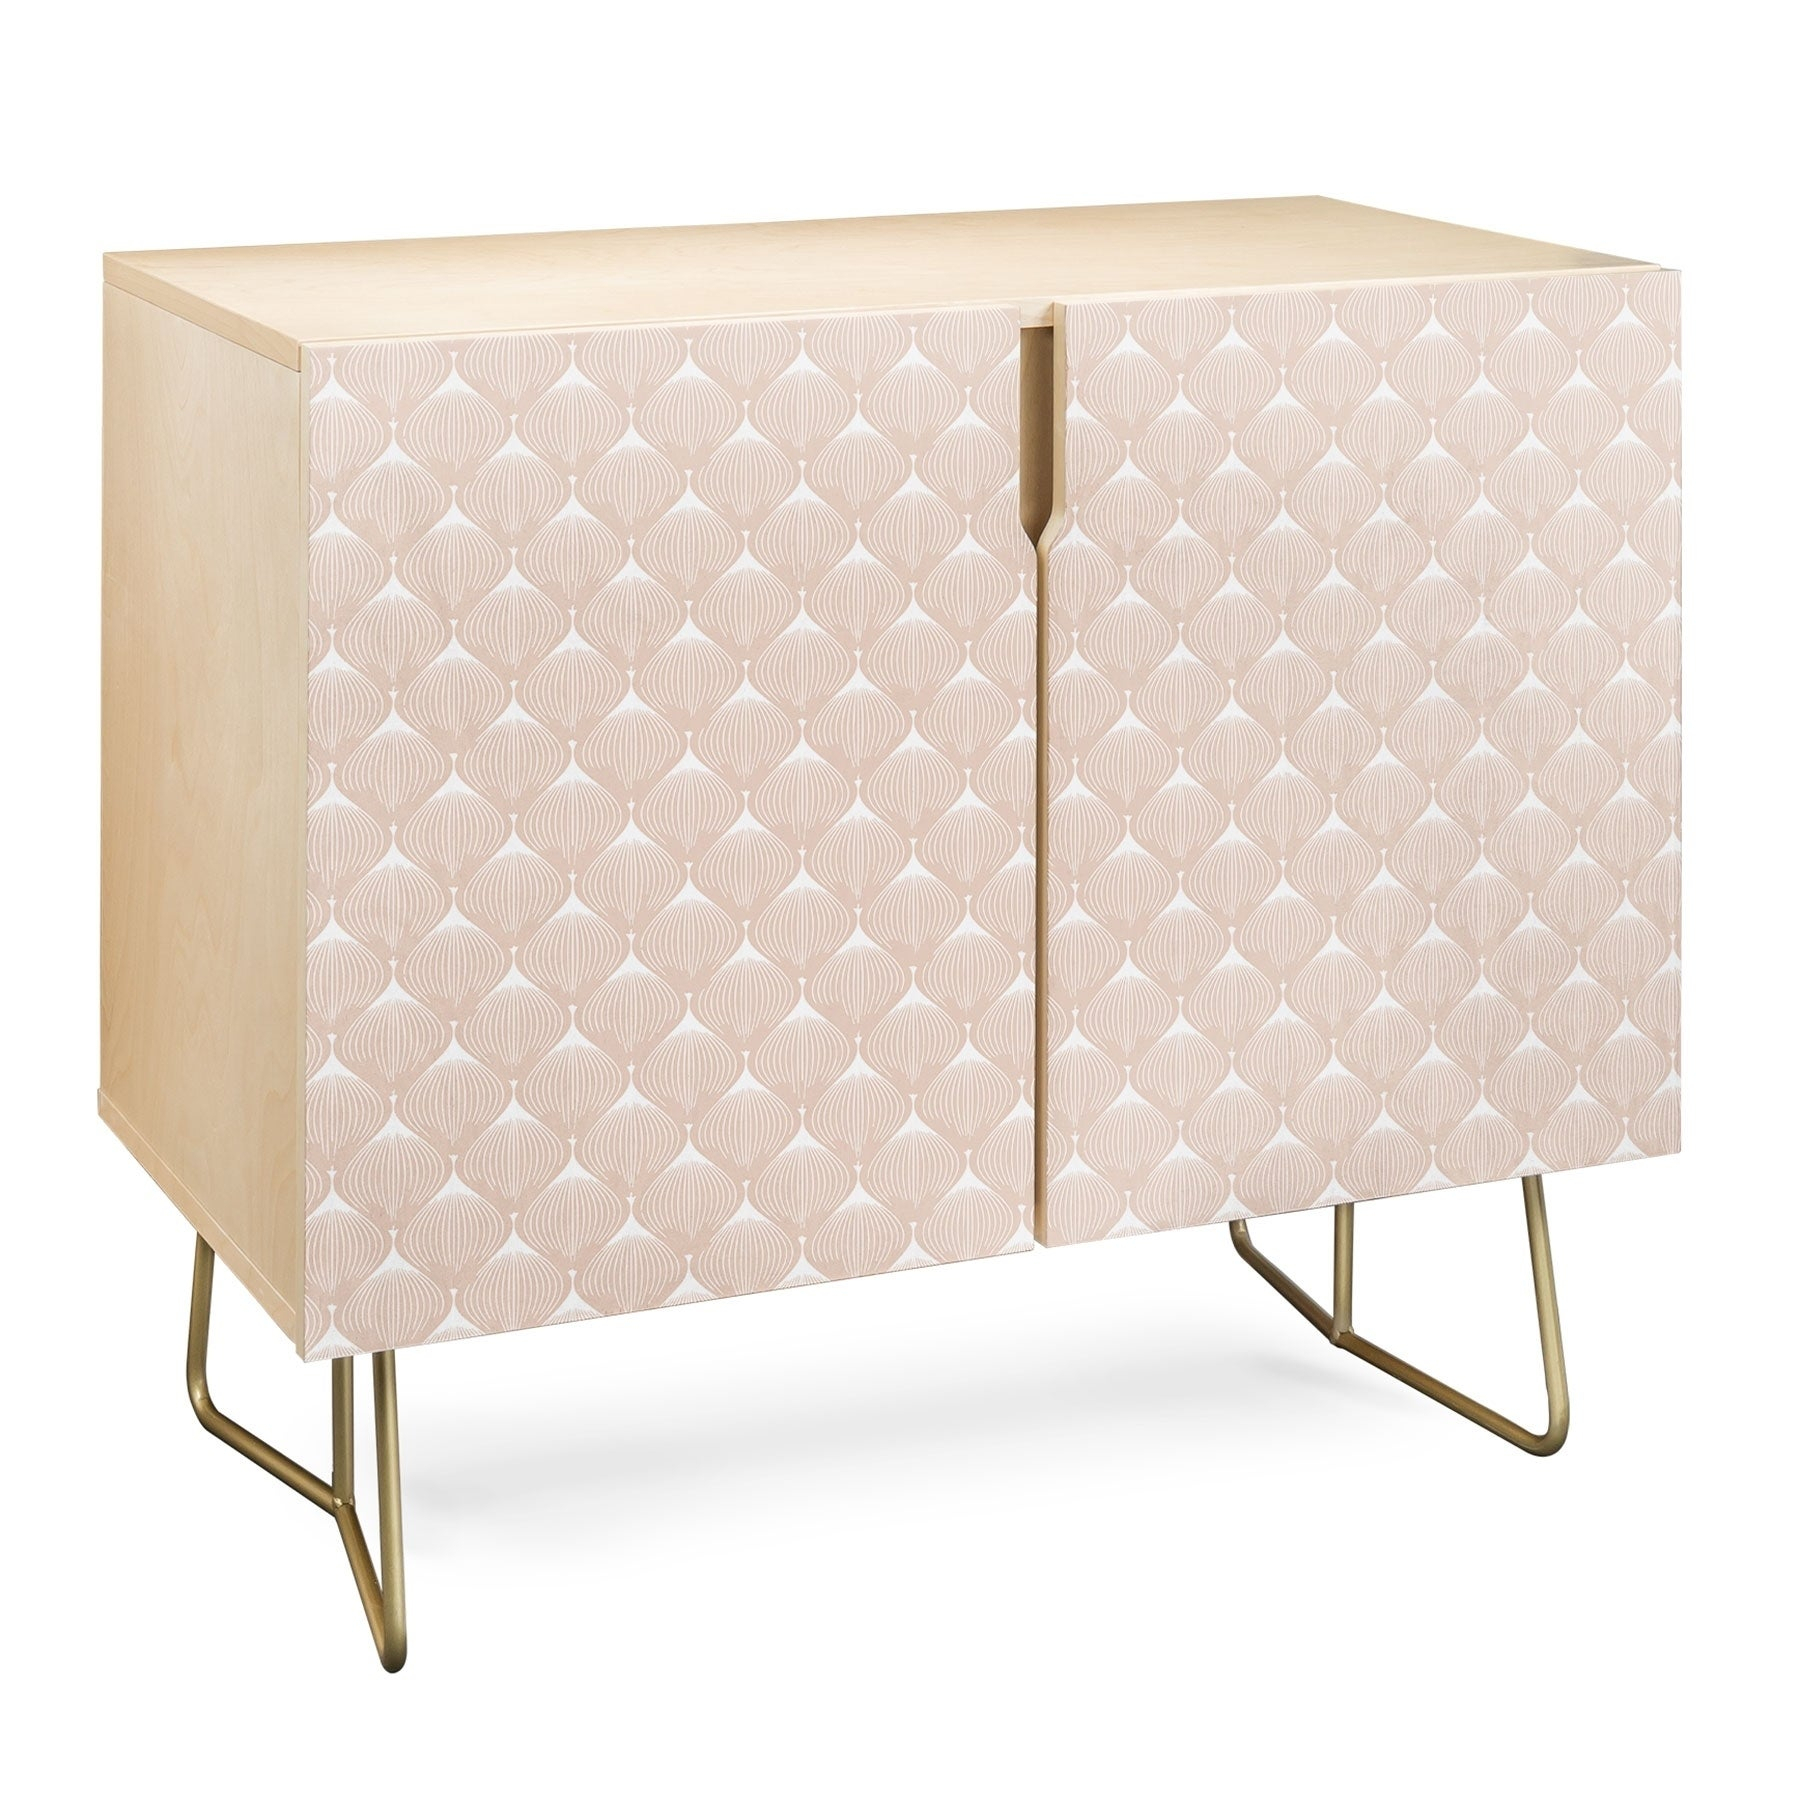 Deny Designs Pale Pink Bulbs Credenza (Birch Or Walnut, 2 Leg Options) In Pale Pink Bulbs Credenzas (Photo 3 of 30)